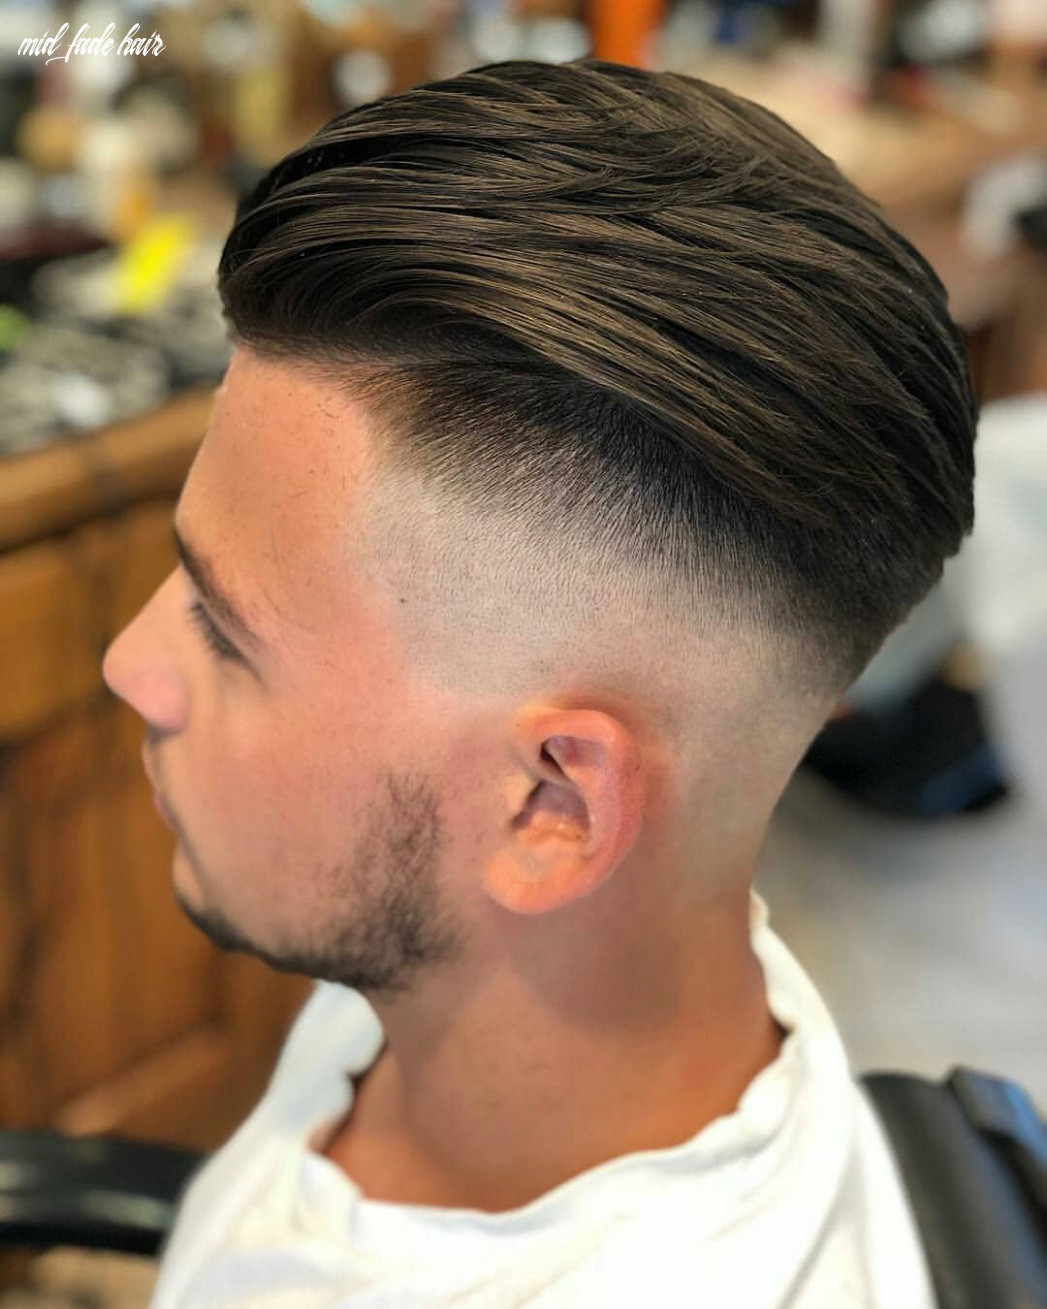 What Is Mid Fade? 12 Best Medium Fade Haircuts - Men's Hairstyles